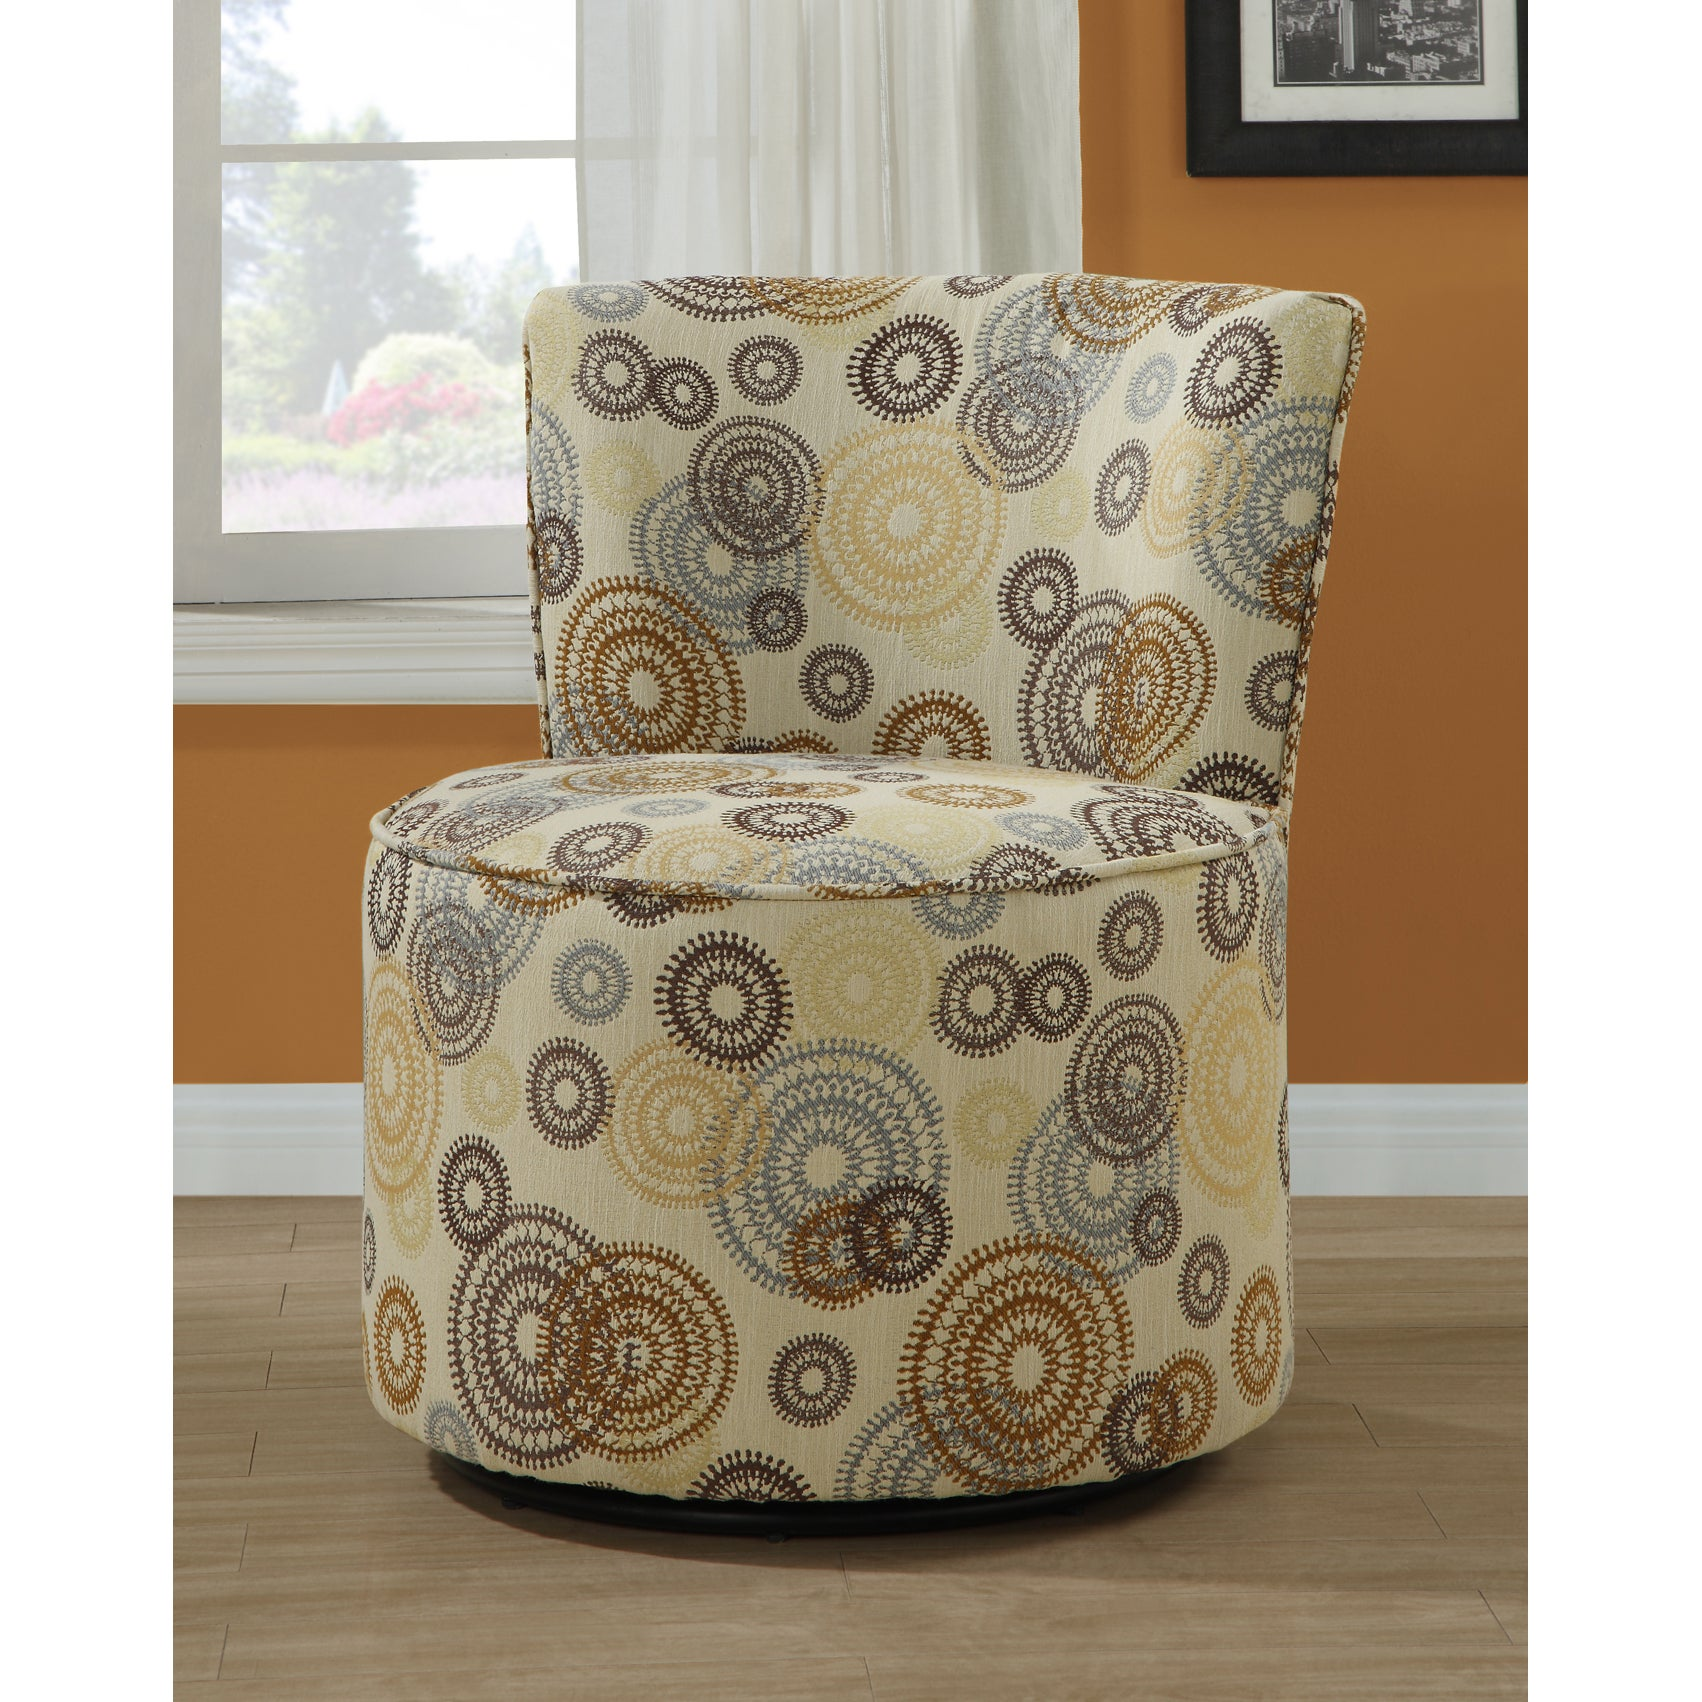 Circular Earth Tone Fabric Accent Chair With Swivel Base